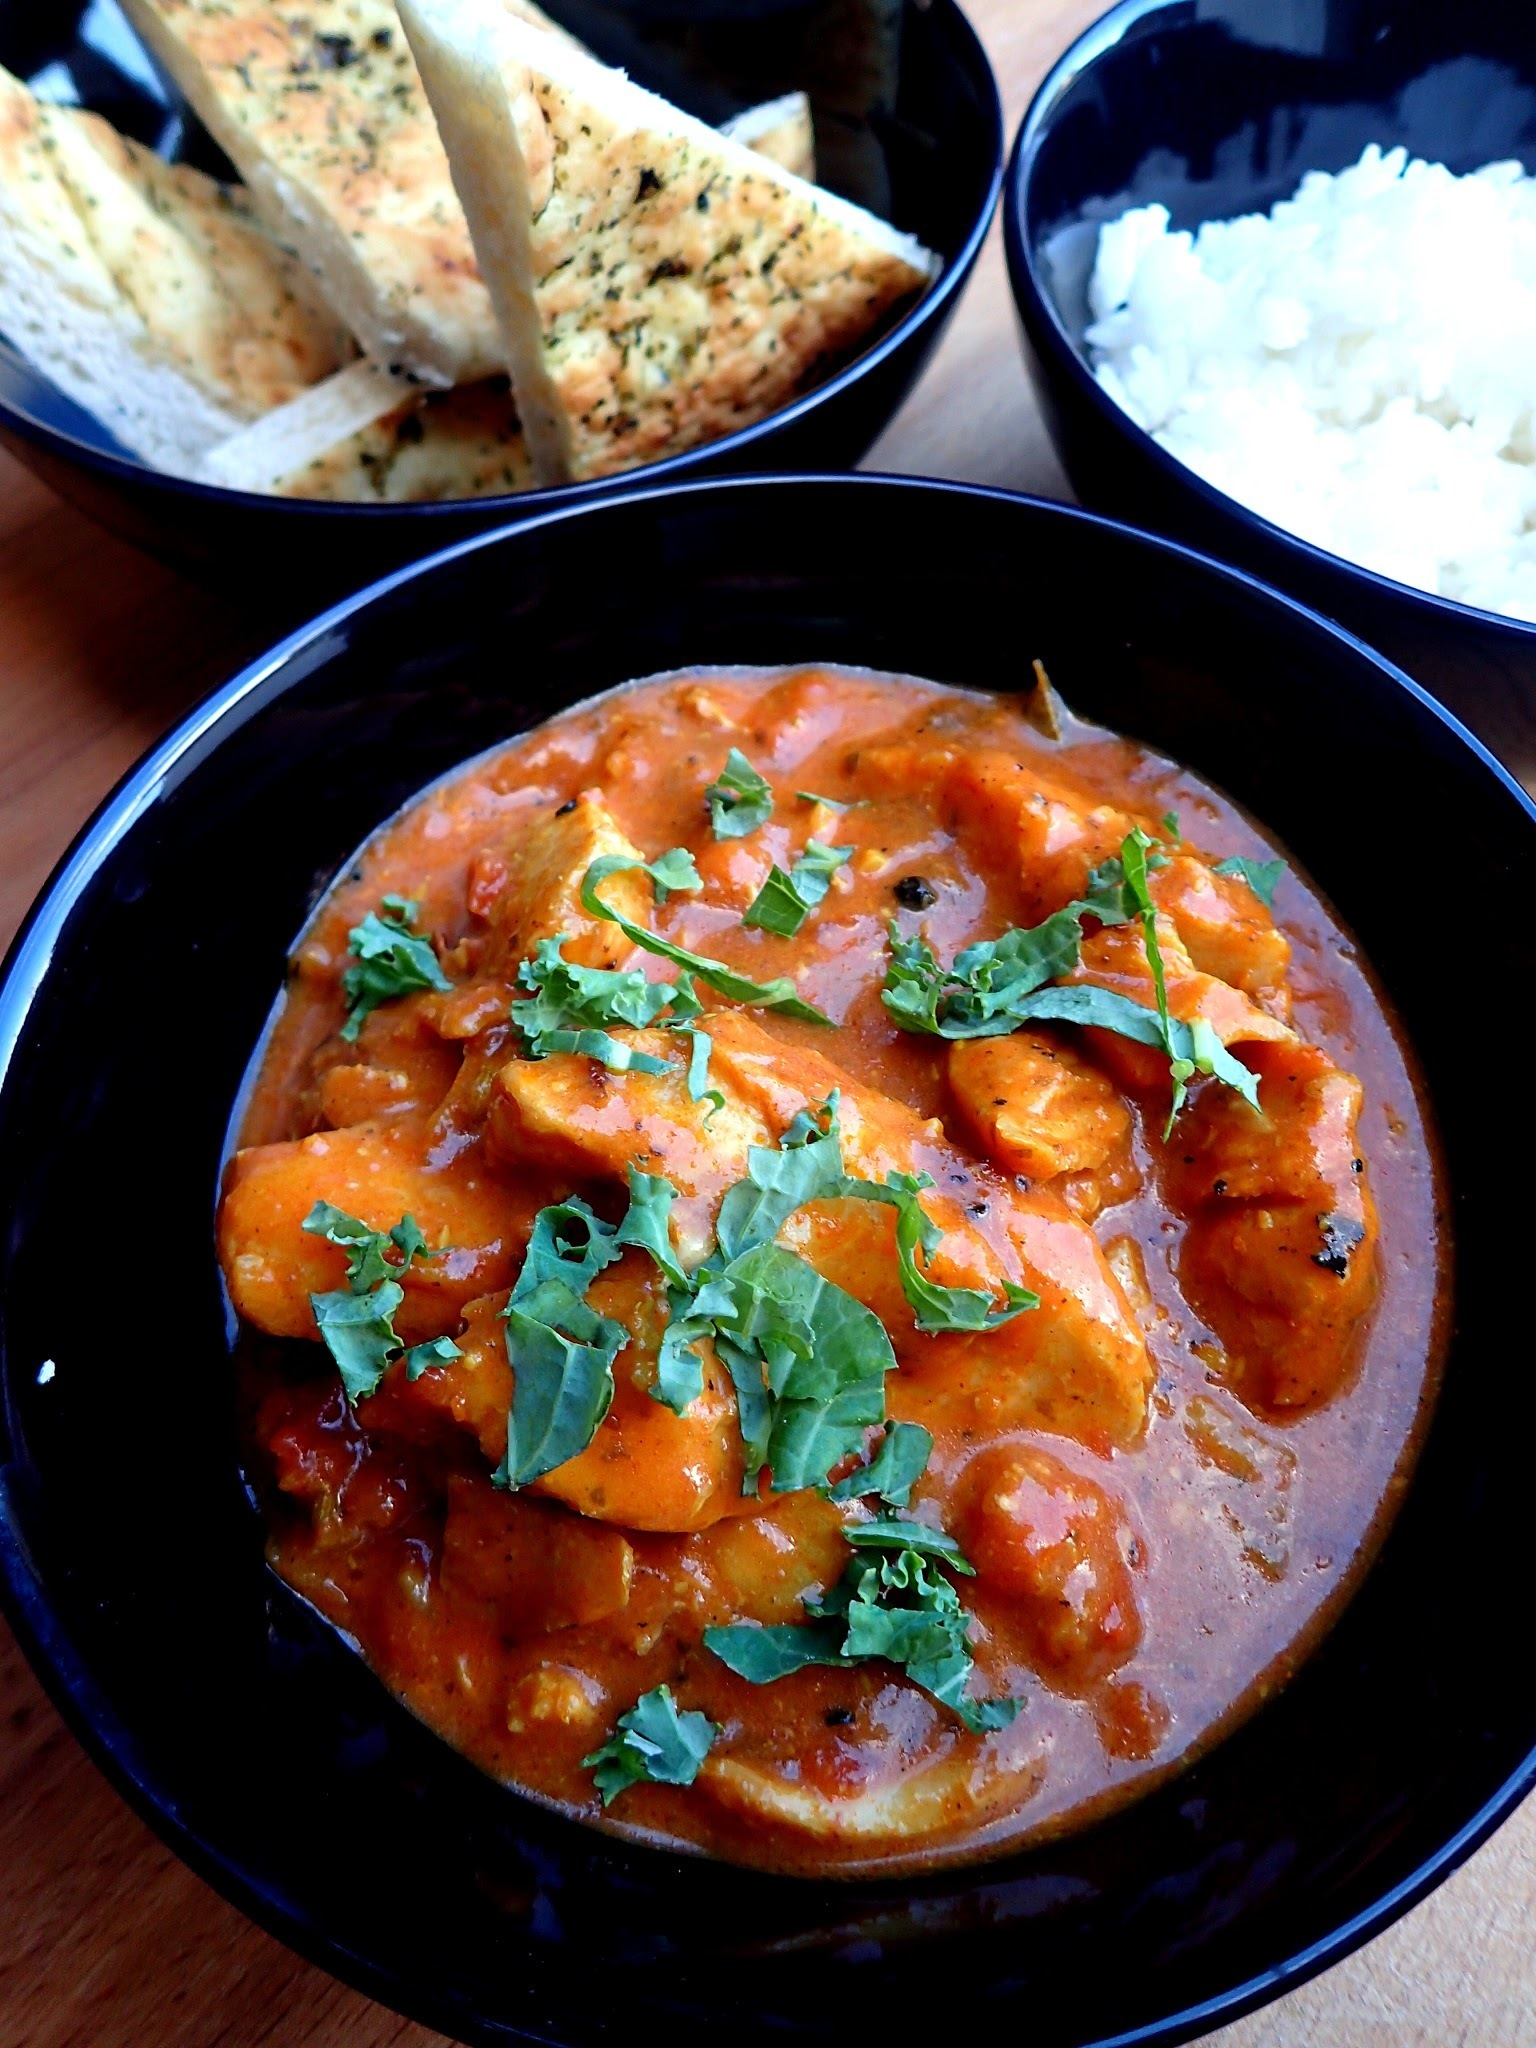 Mulligatanni fish curry - delicious, perfectly seasoned fish curry.